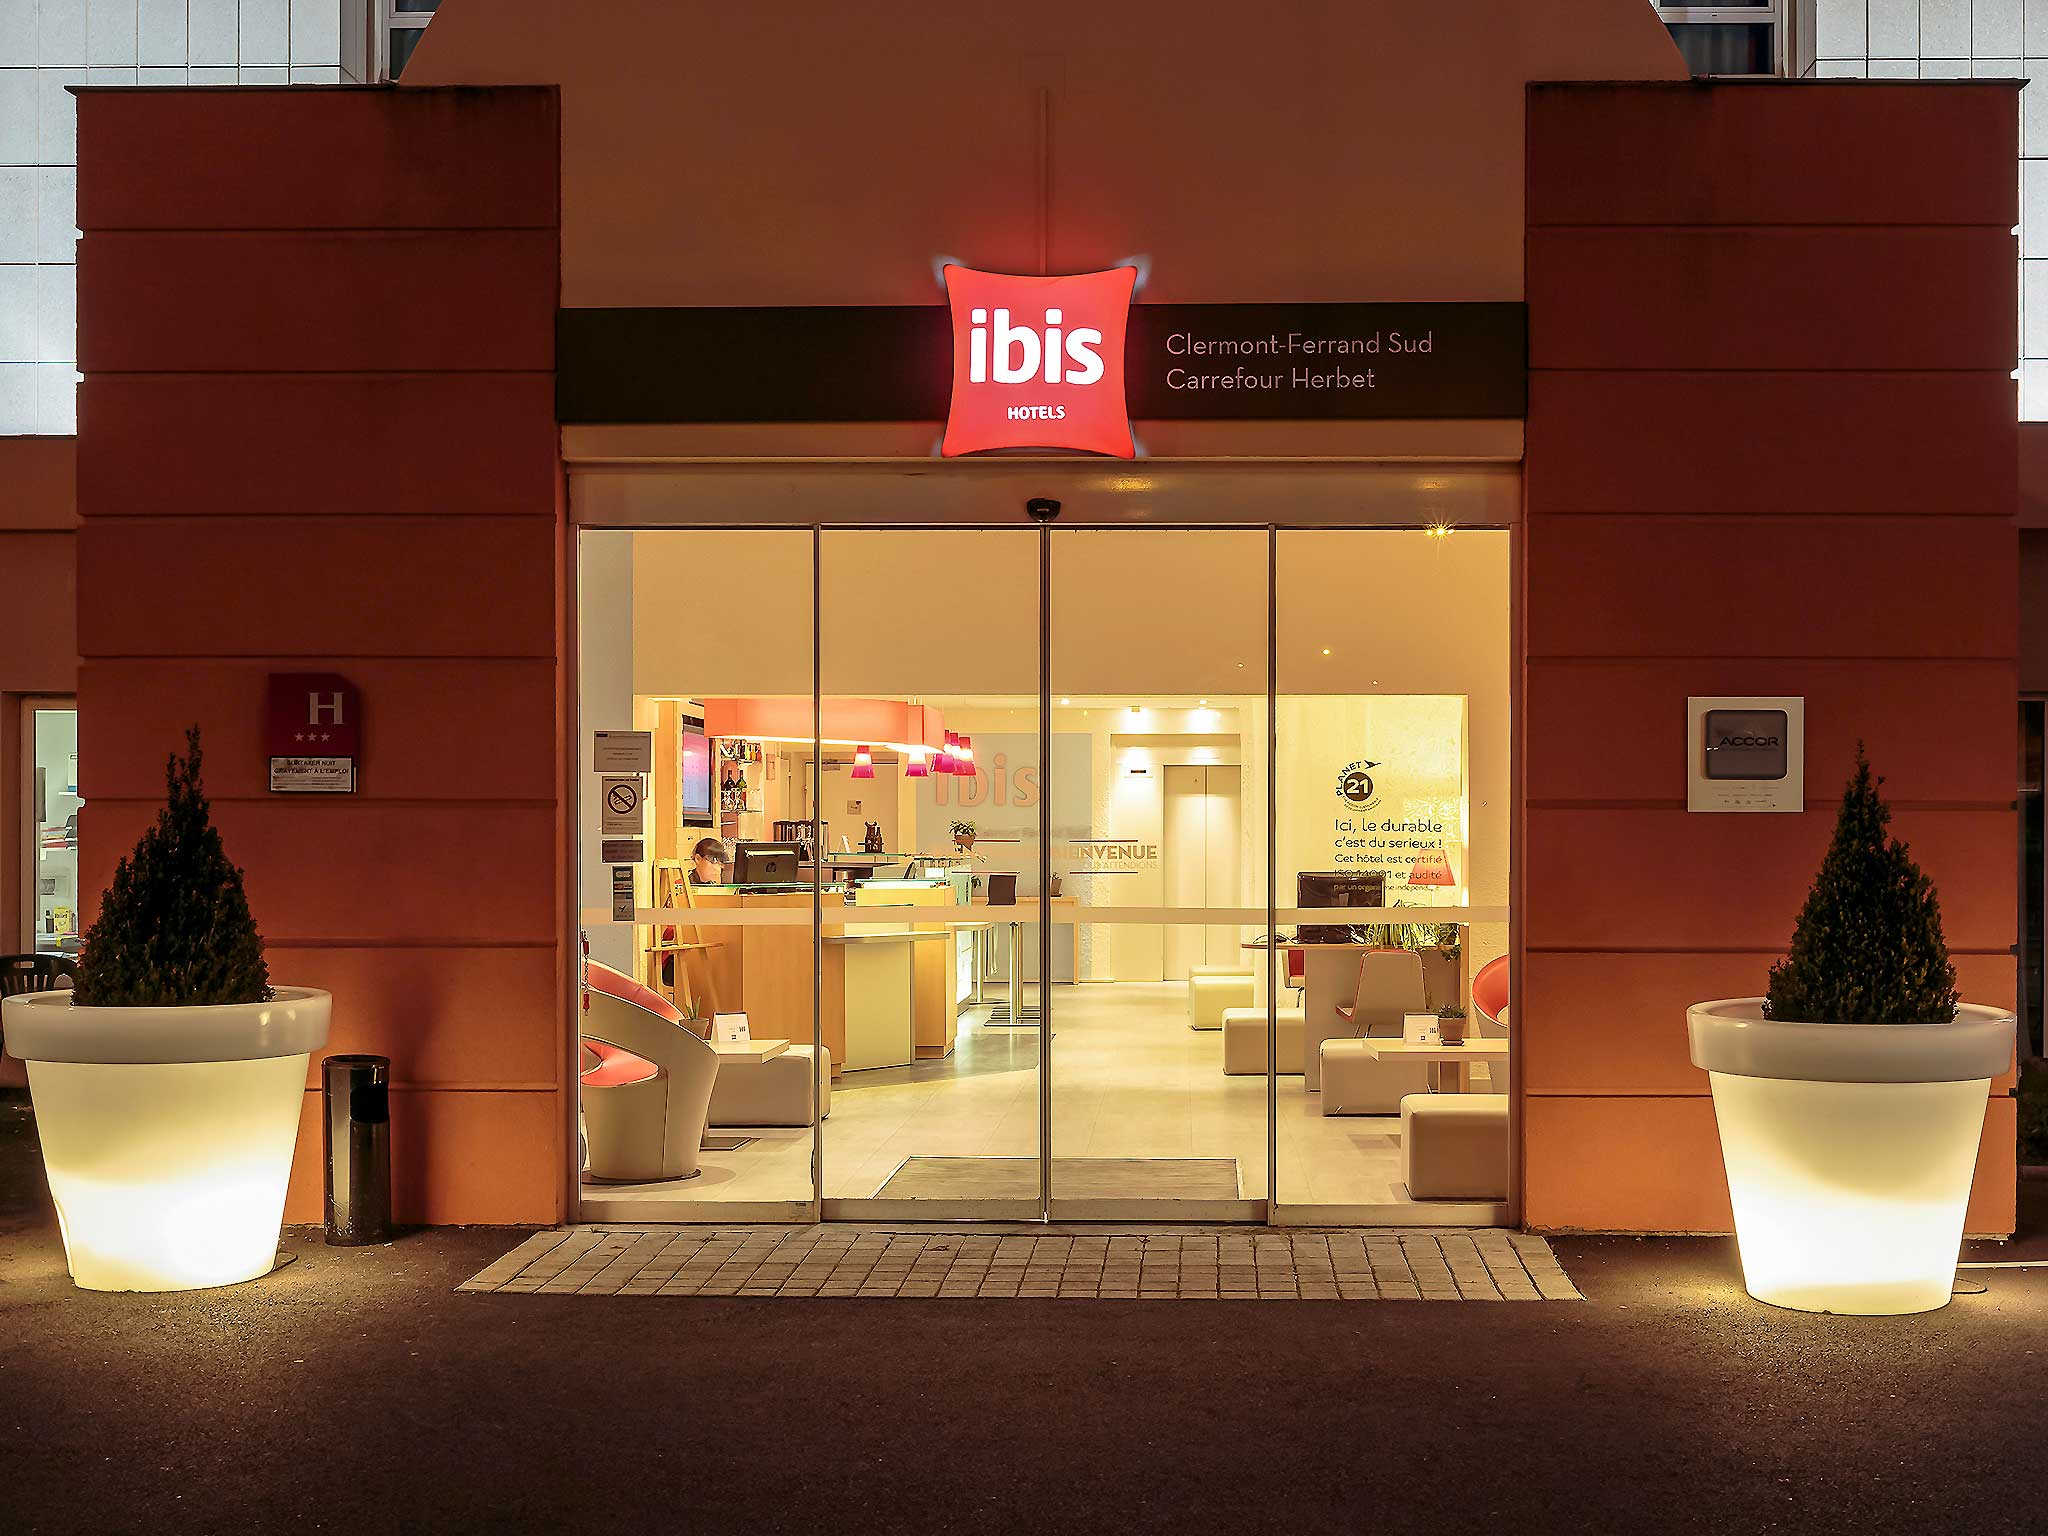 Hotell – ibis Clermont-Ferrand Sud Carrefour Herbet